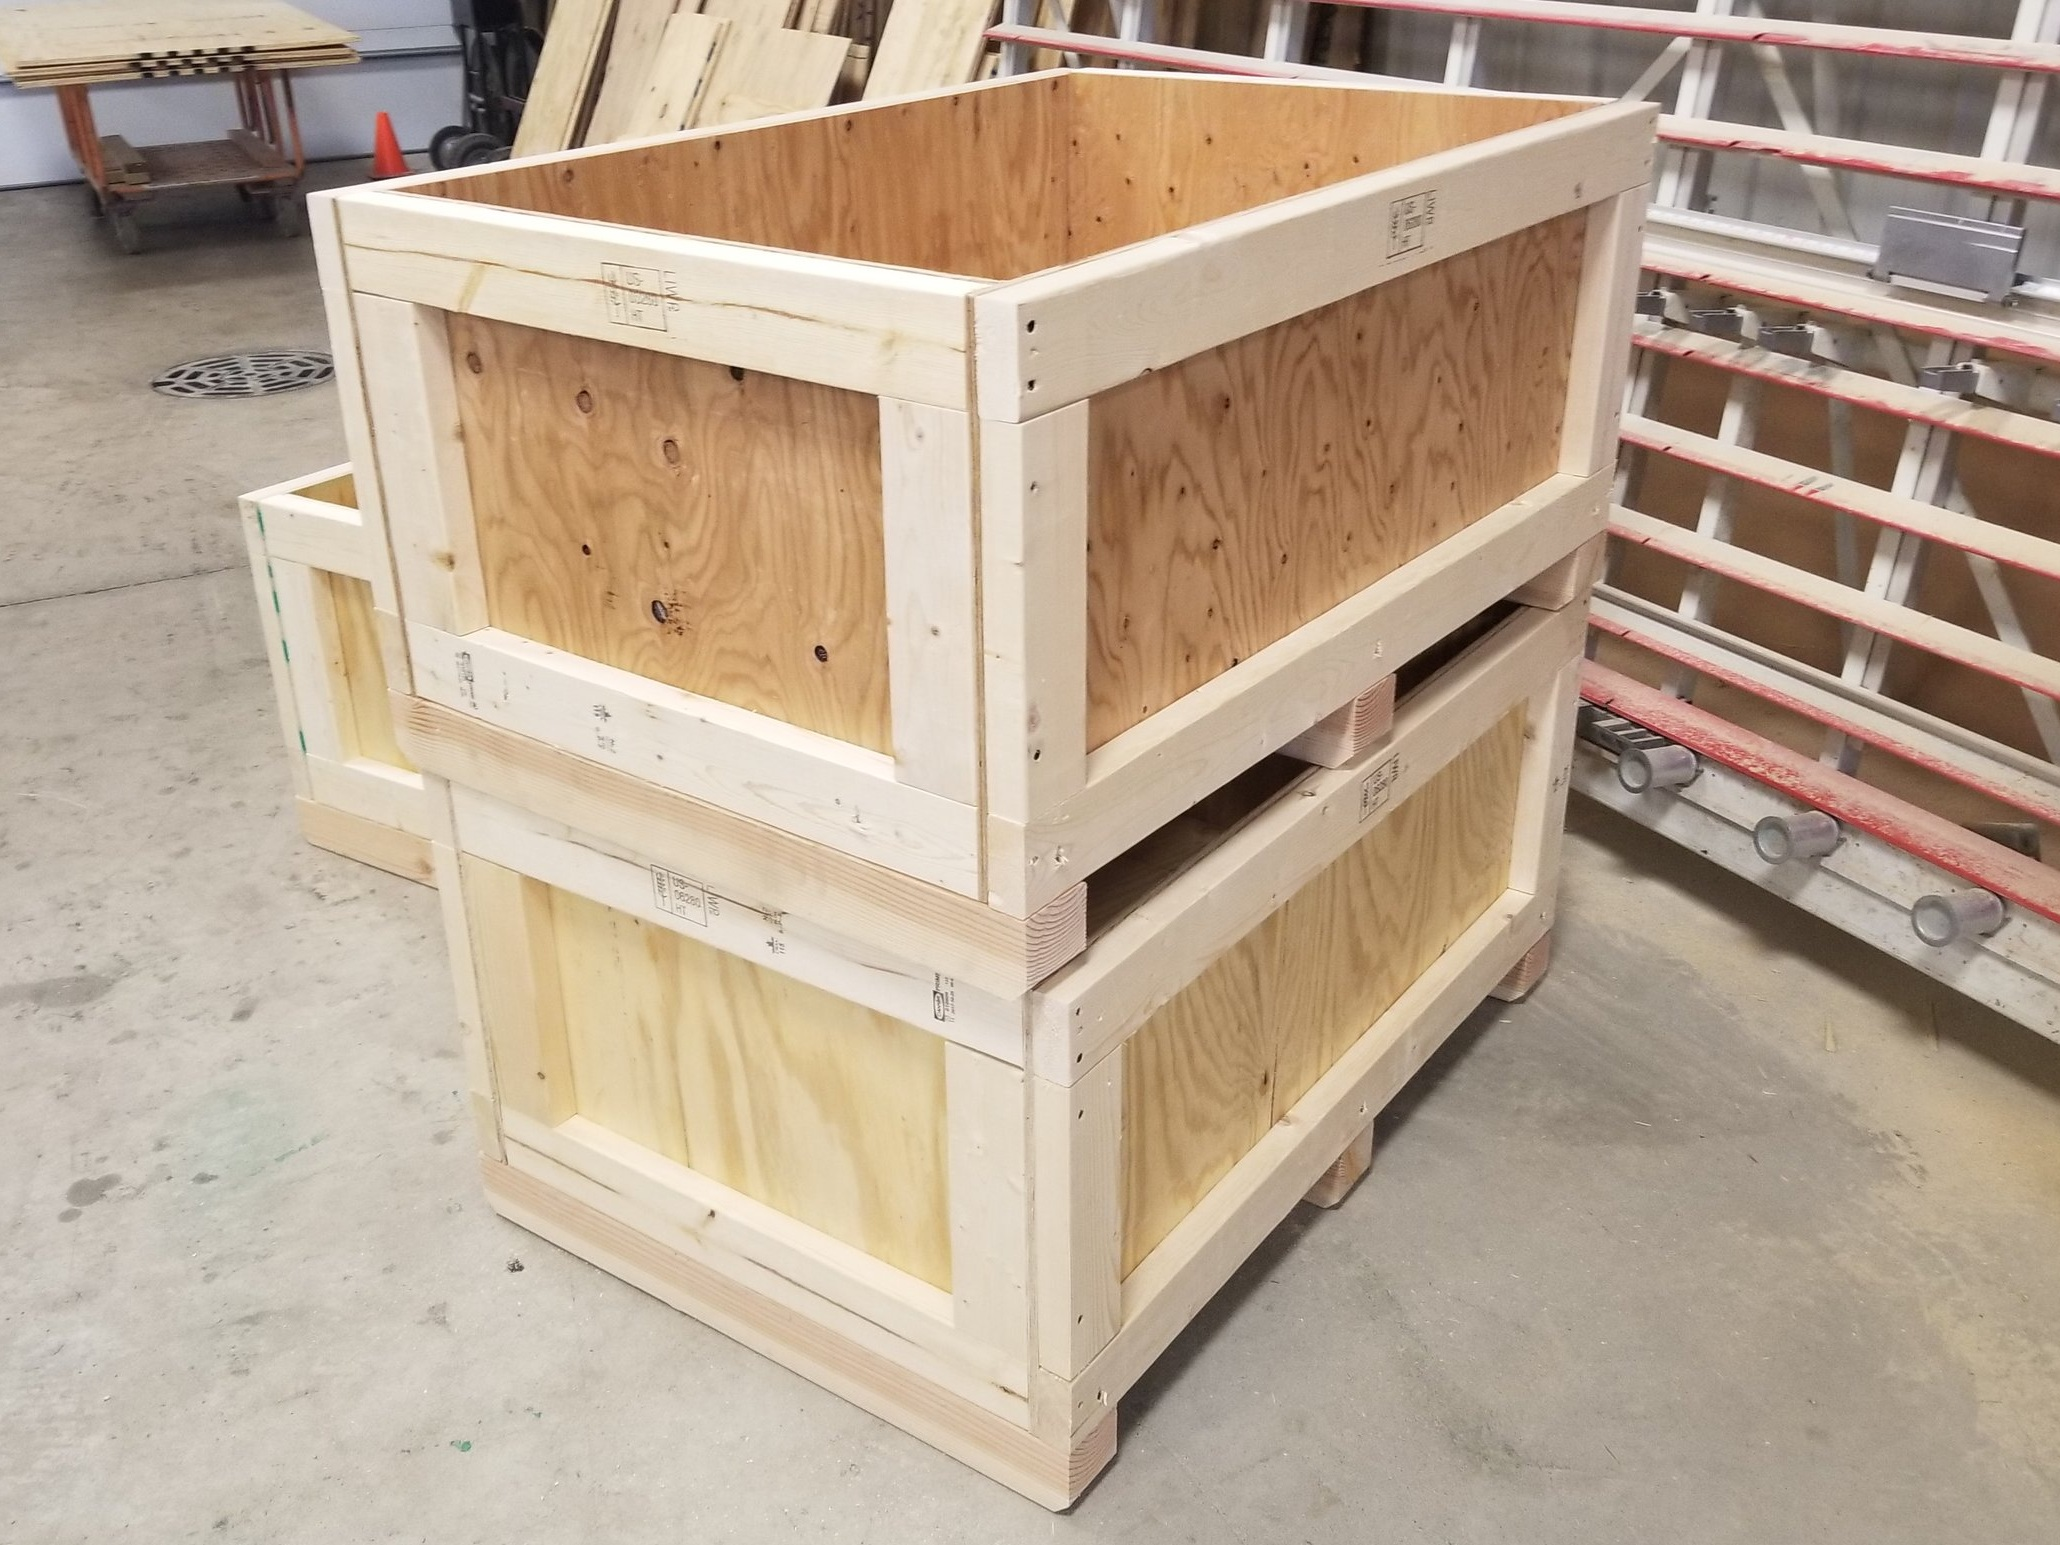 Custom export crates ISPM-15 certified - Wooden crates stamped and certified ISPM-15 compliant for international use.